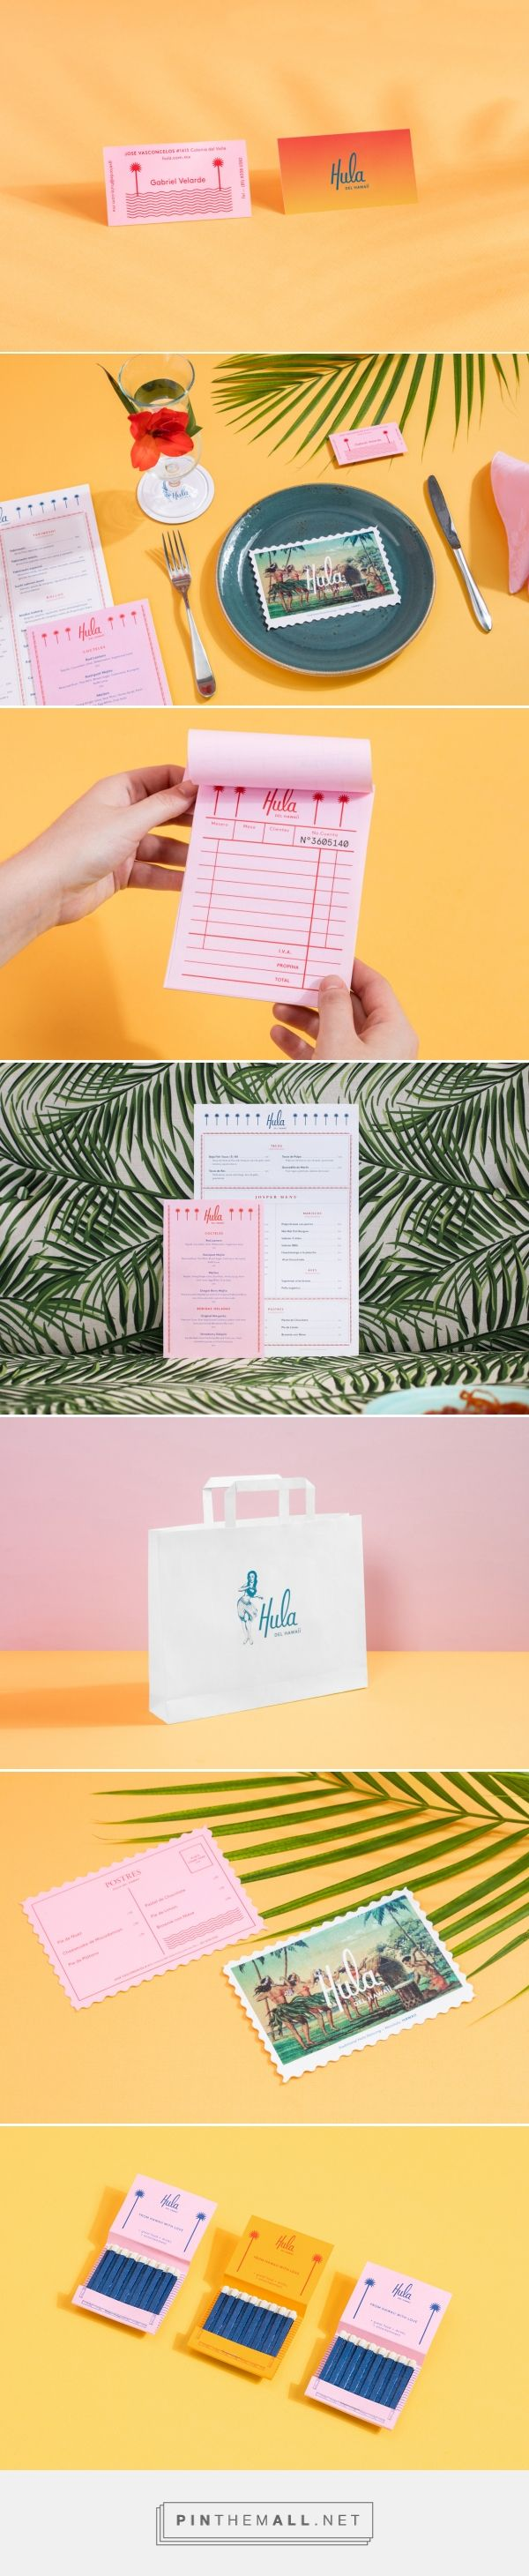 The Design Blog - Design Inspiration... - a grouped images picture - Pin Them…